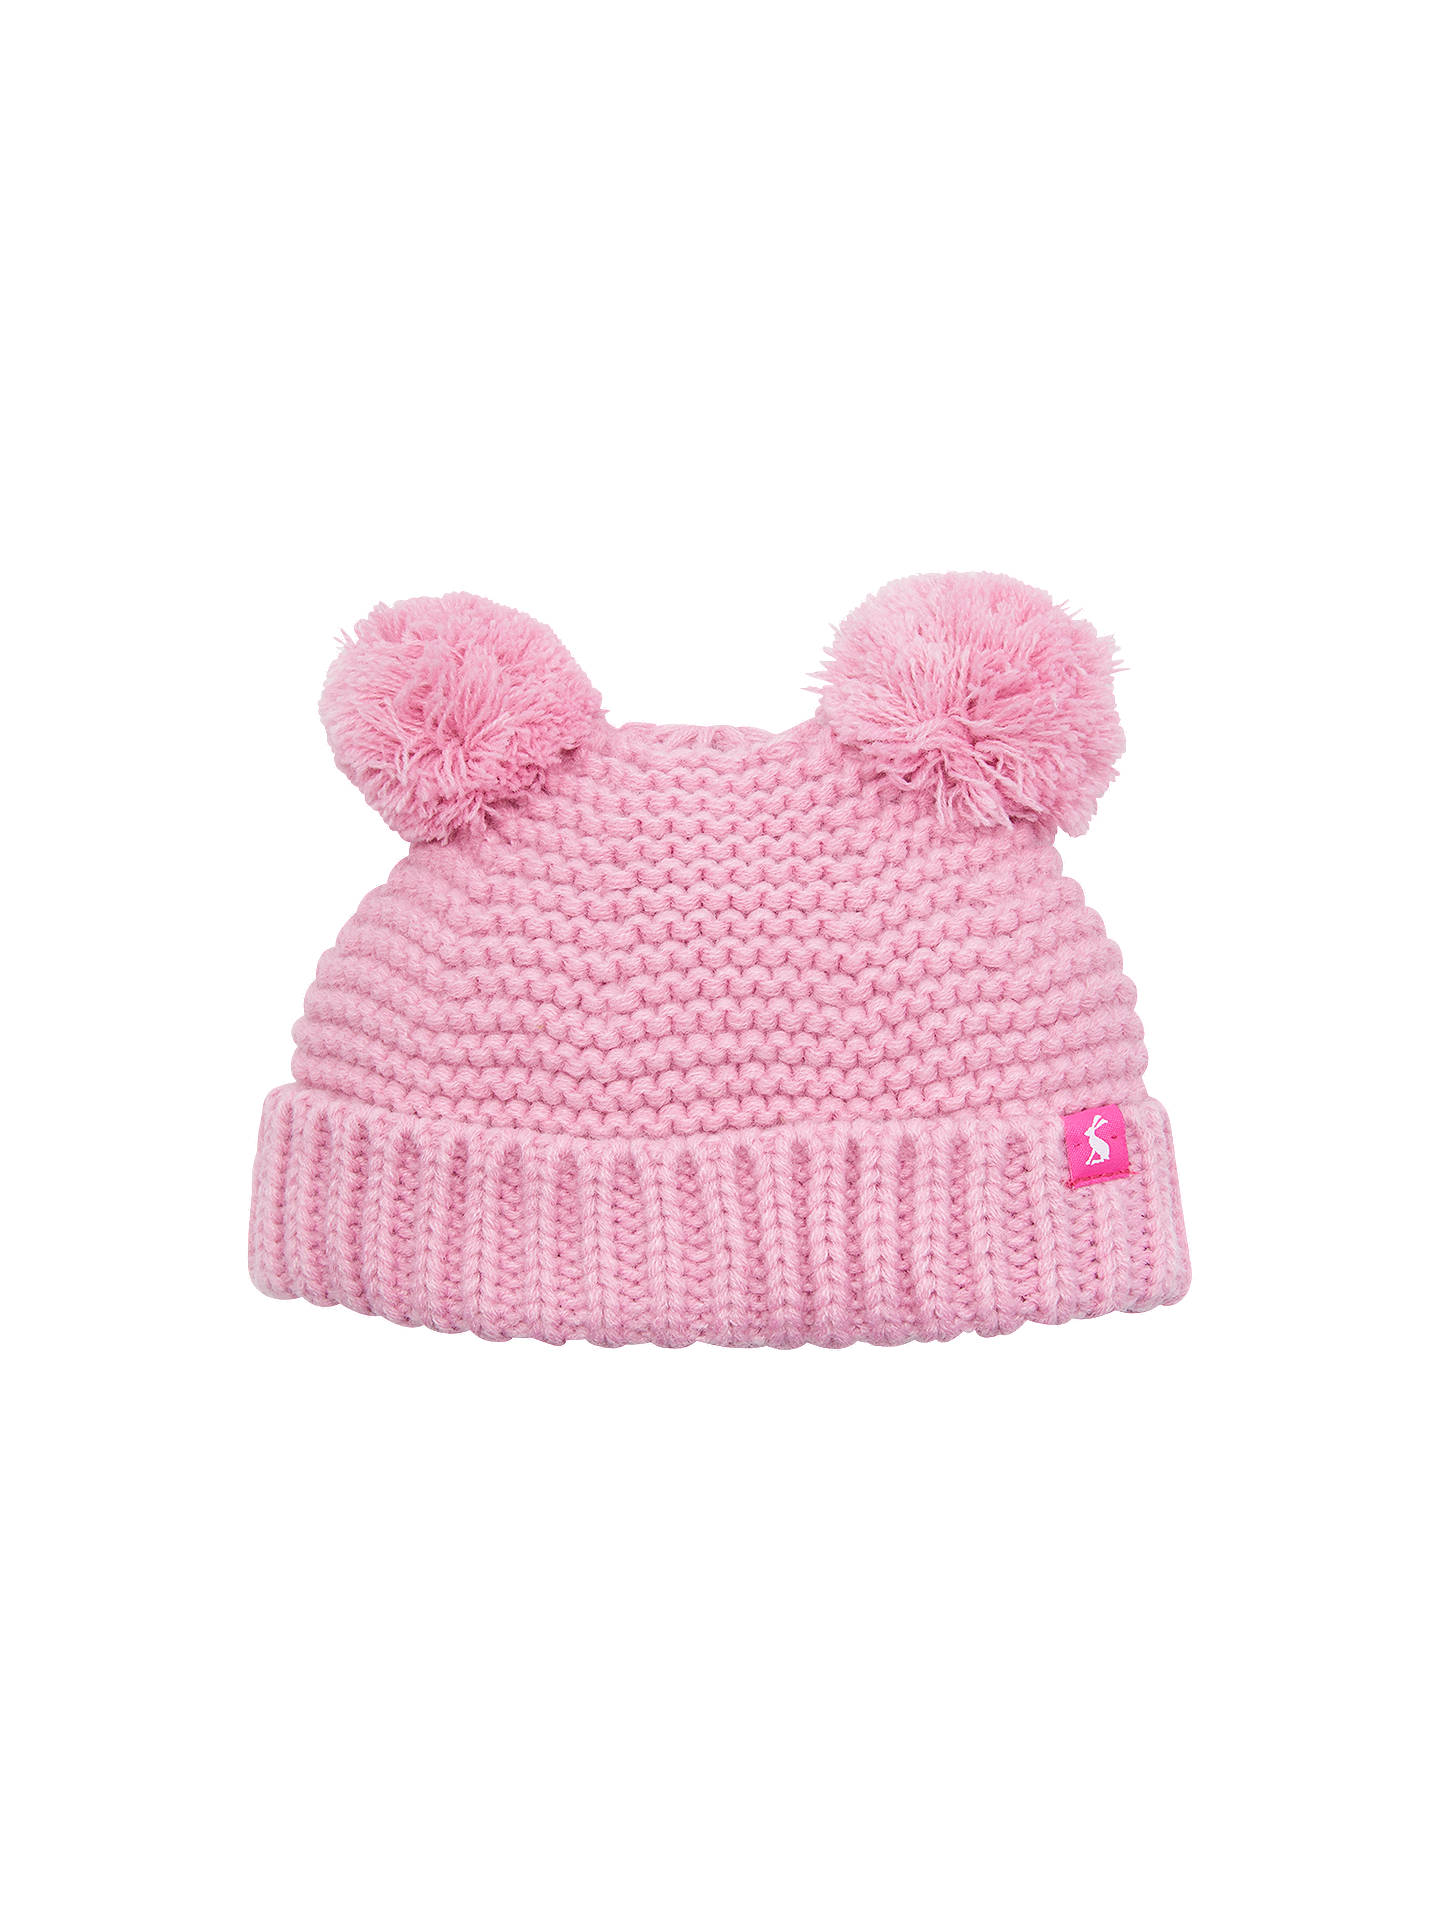 b8ef13f17e0 Buy Baby Joule Knitted Pom Pom Hat